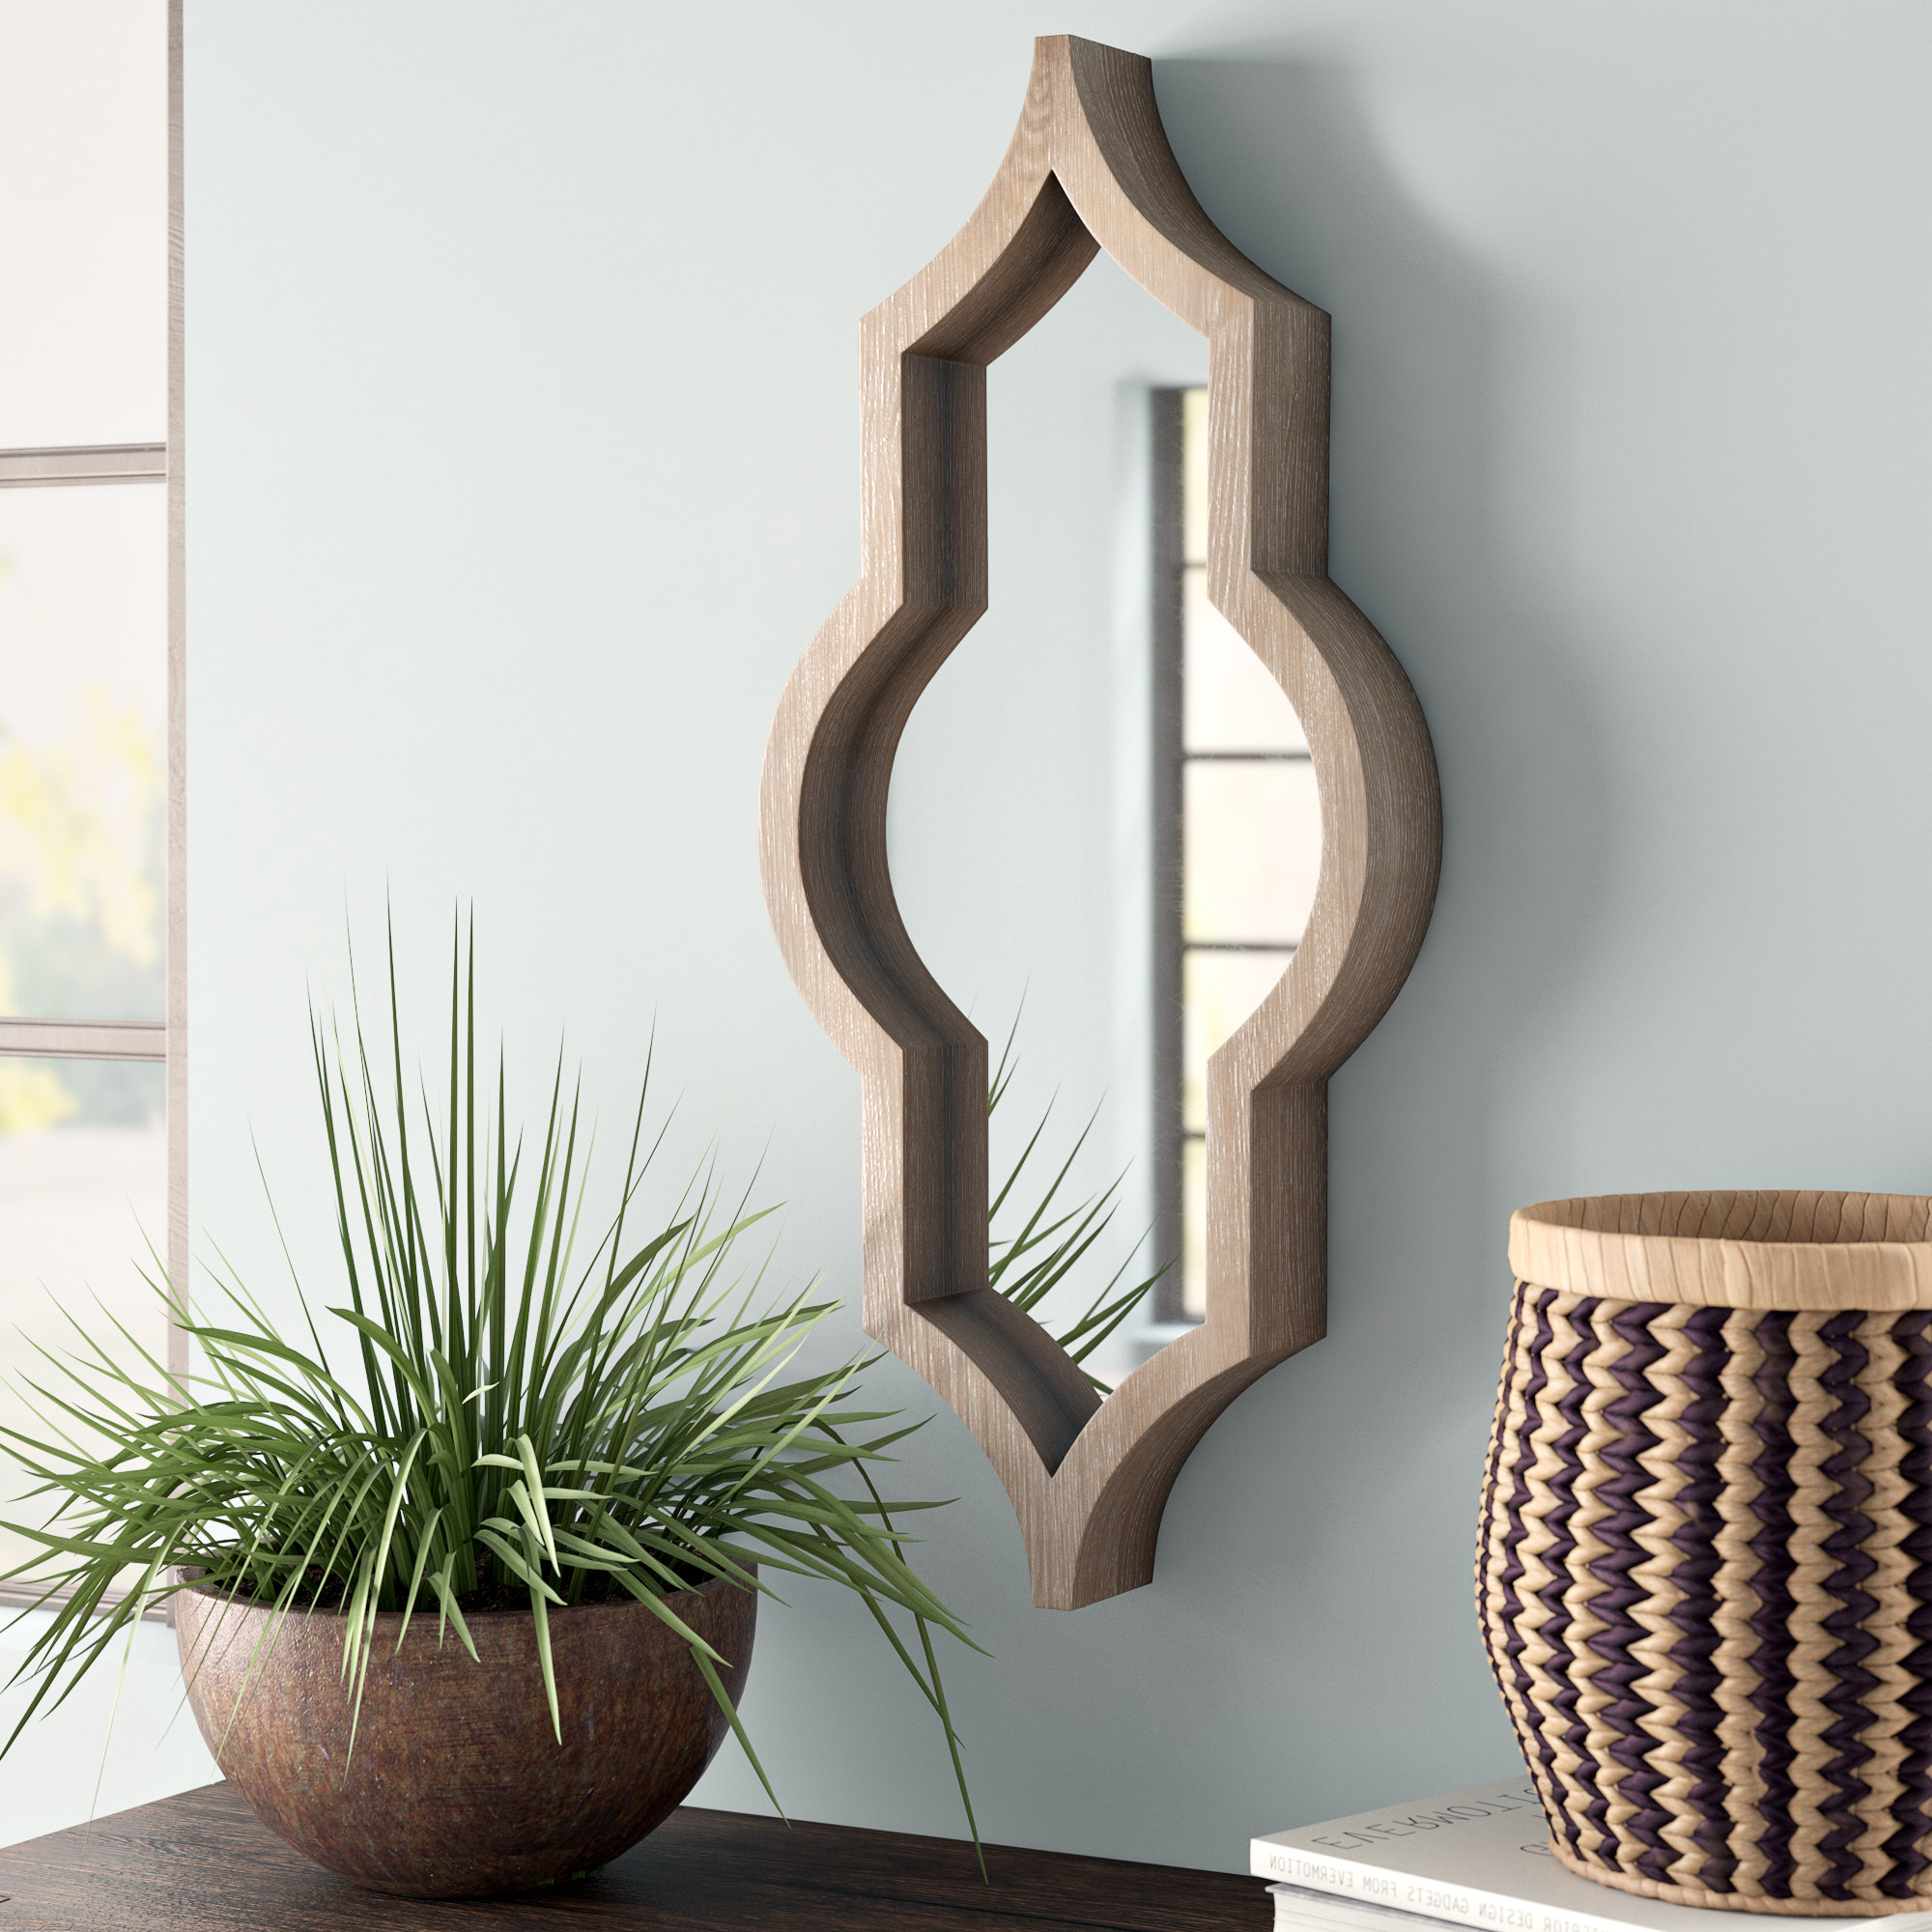 Padang Irregular Wood Framed Wall Mirrors Pertaining To Well Known Padang Irregular Wood Framed Wall Mirror (View 1 of 20)